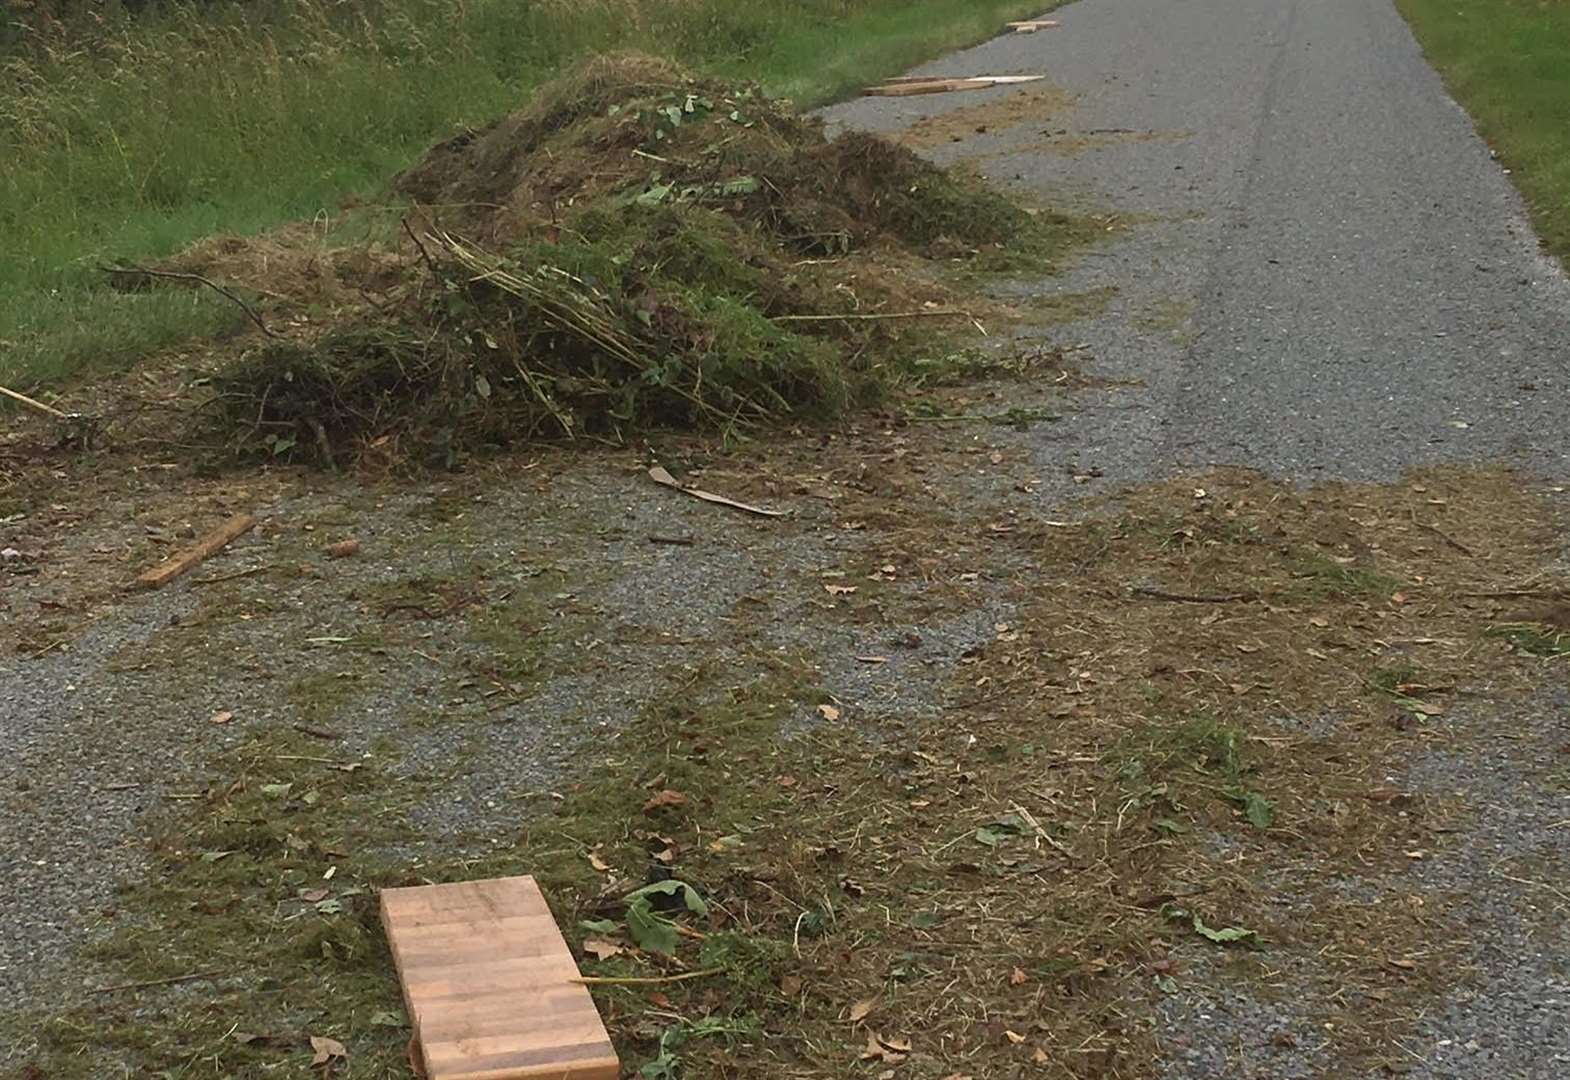 Fly-tippers dump garden waste in country road near Grantham